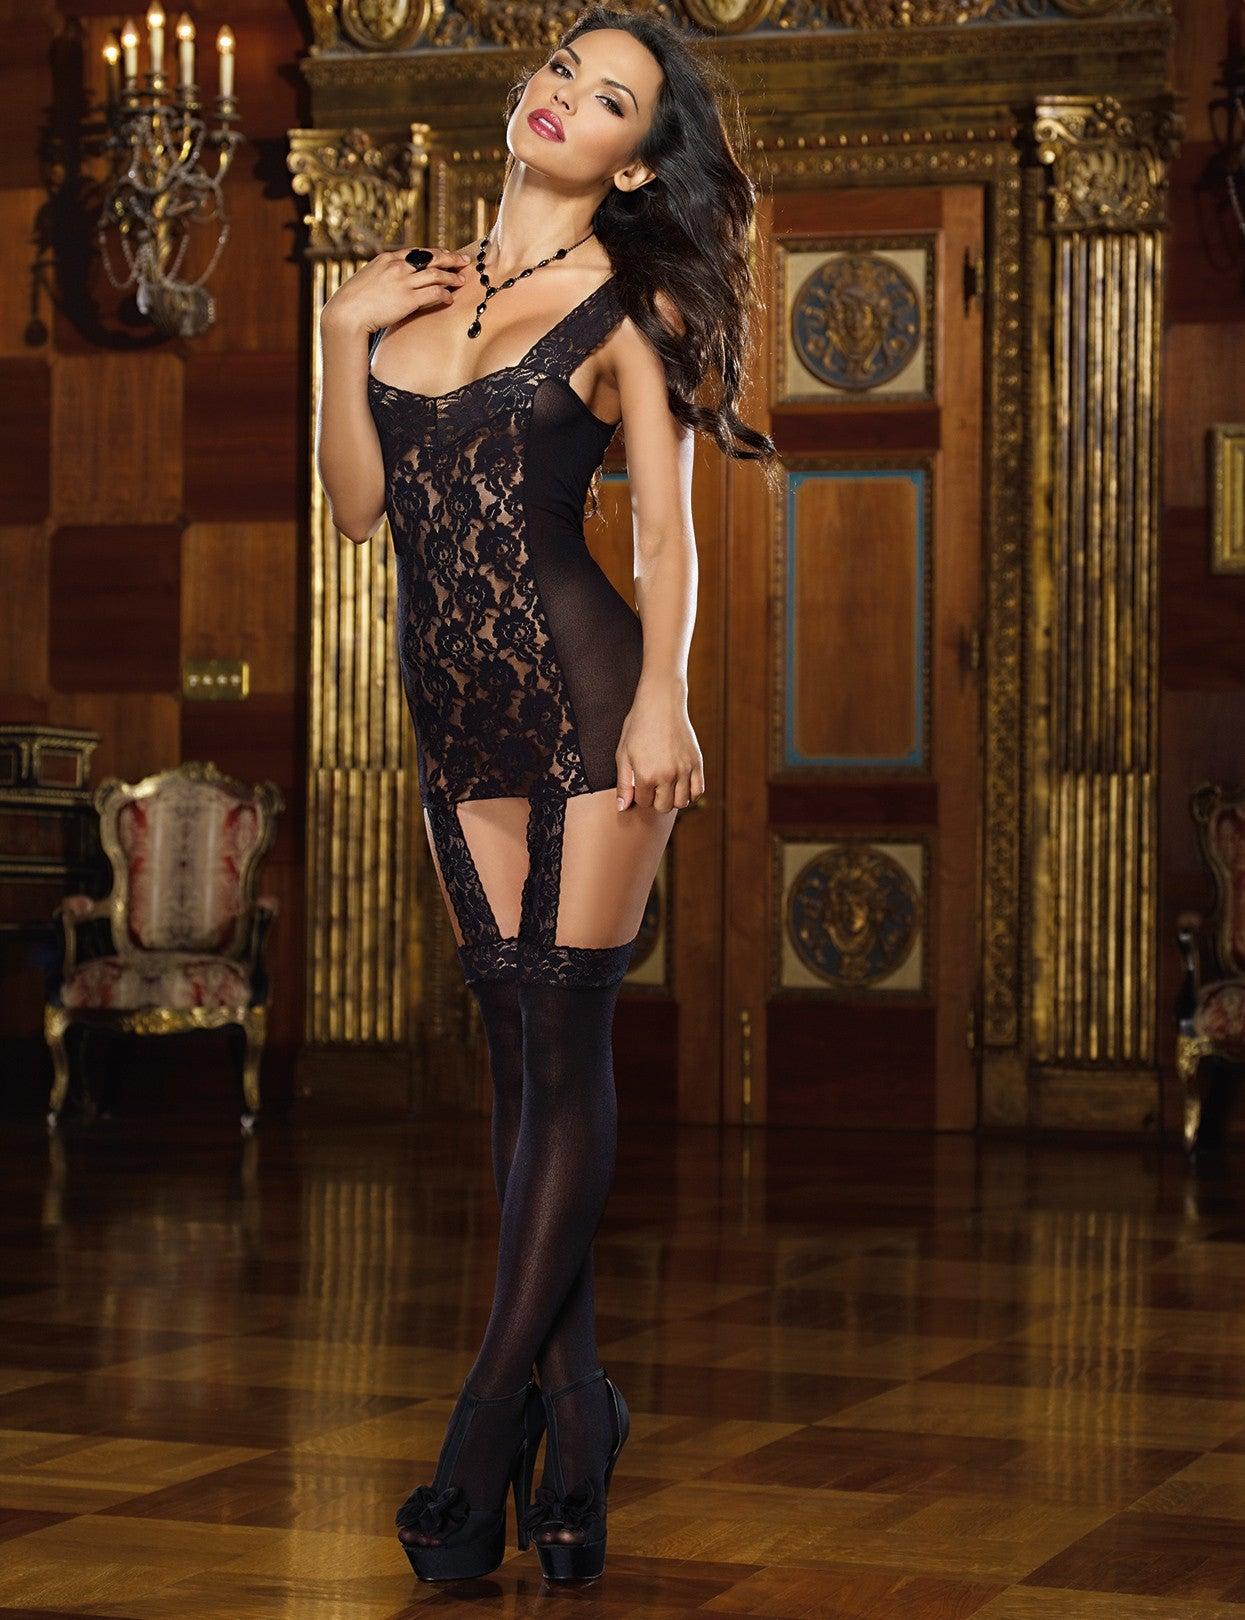 Tahiti Hosiery Garter Dress - just damn sexy  - 1